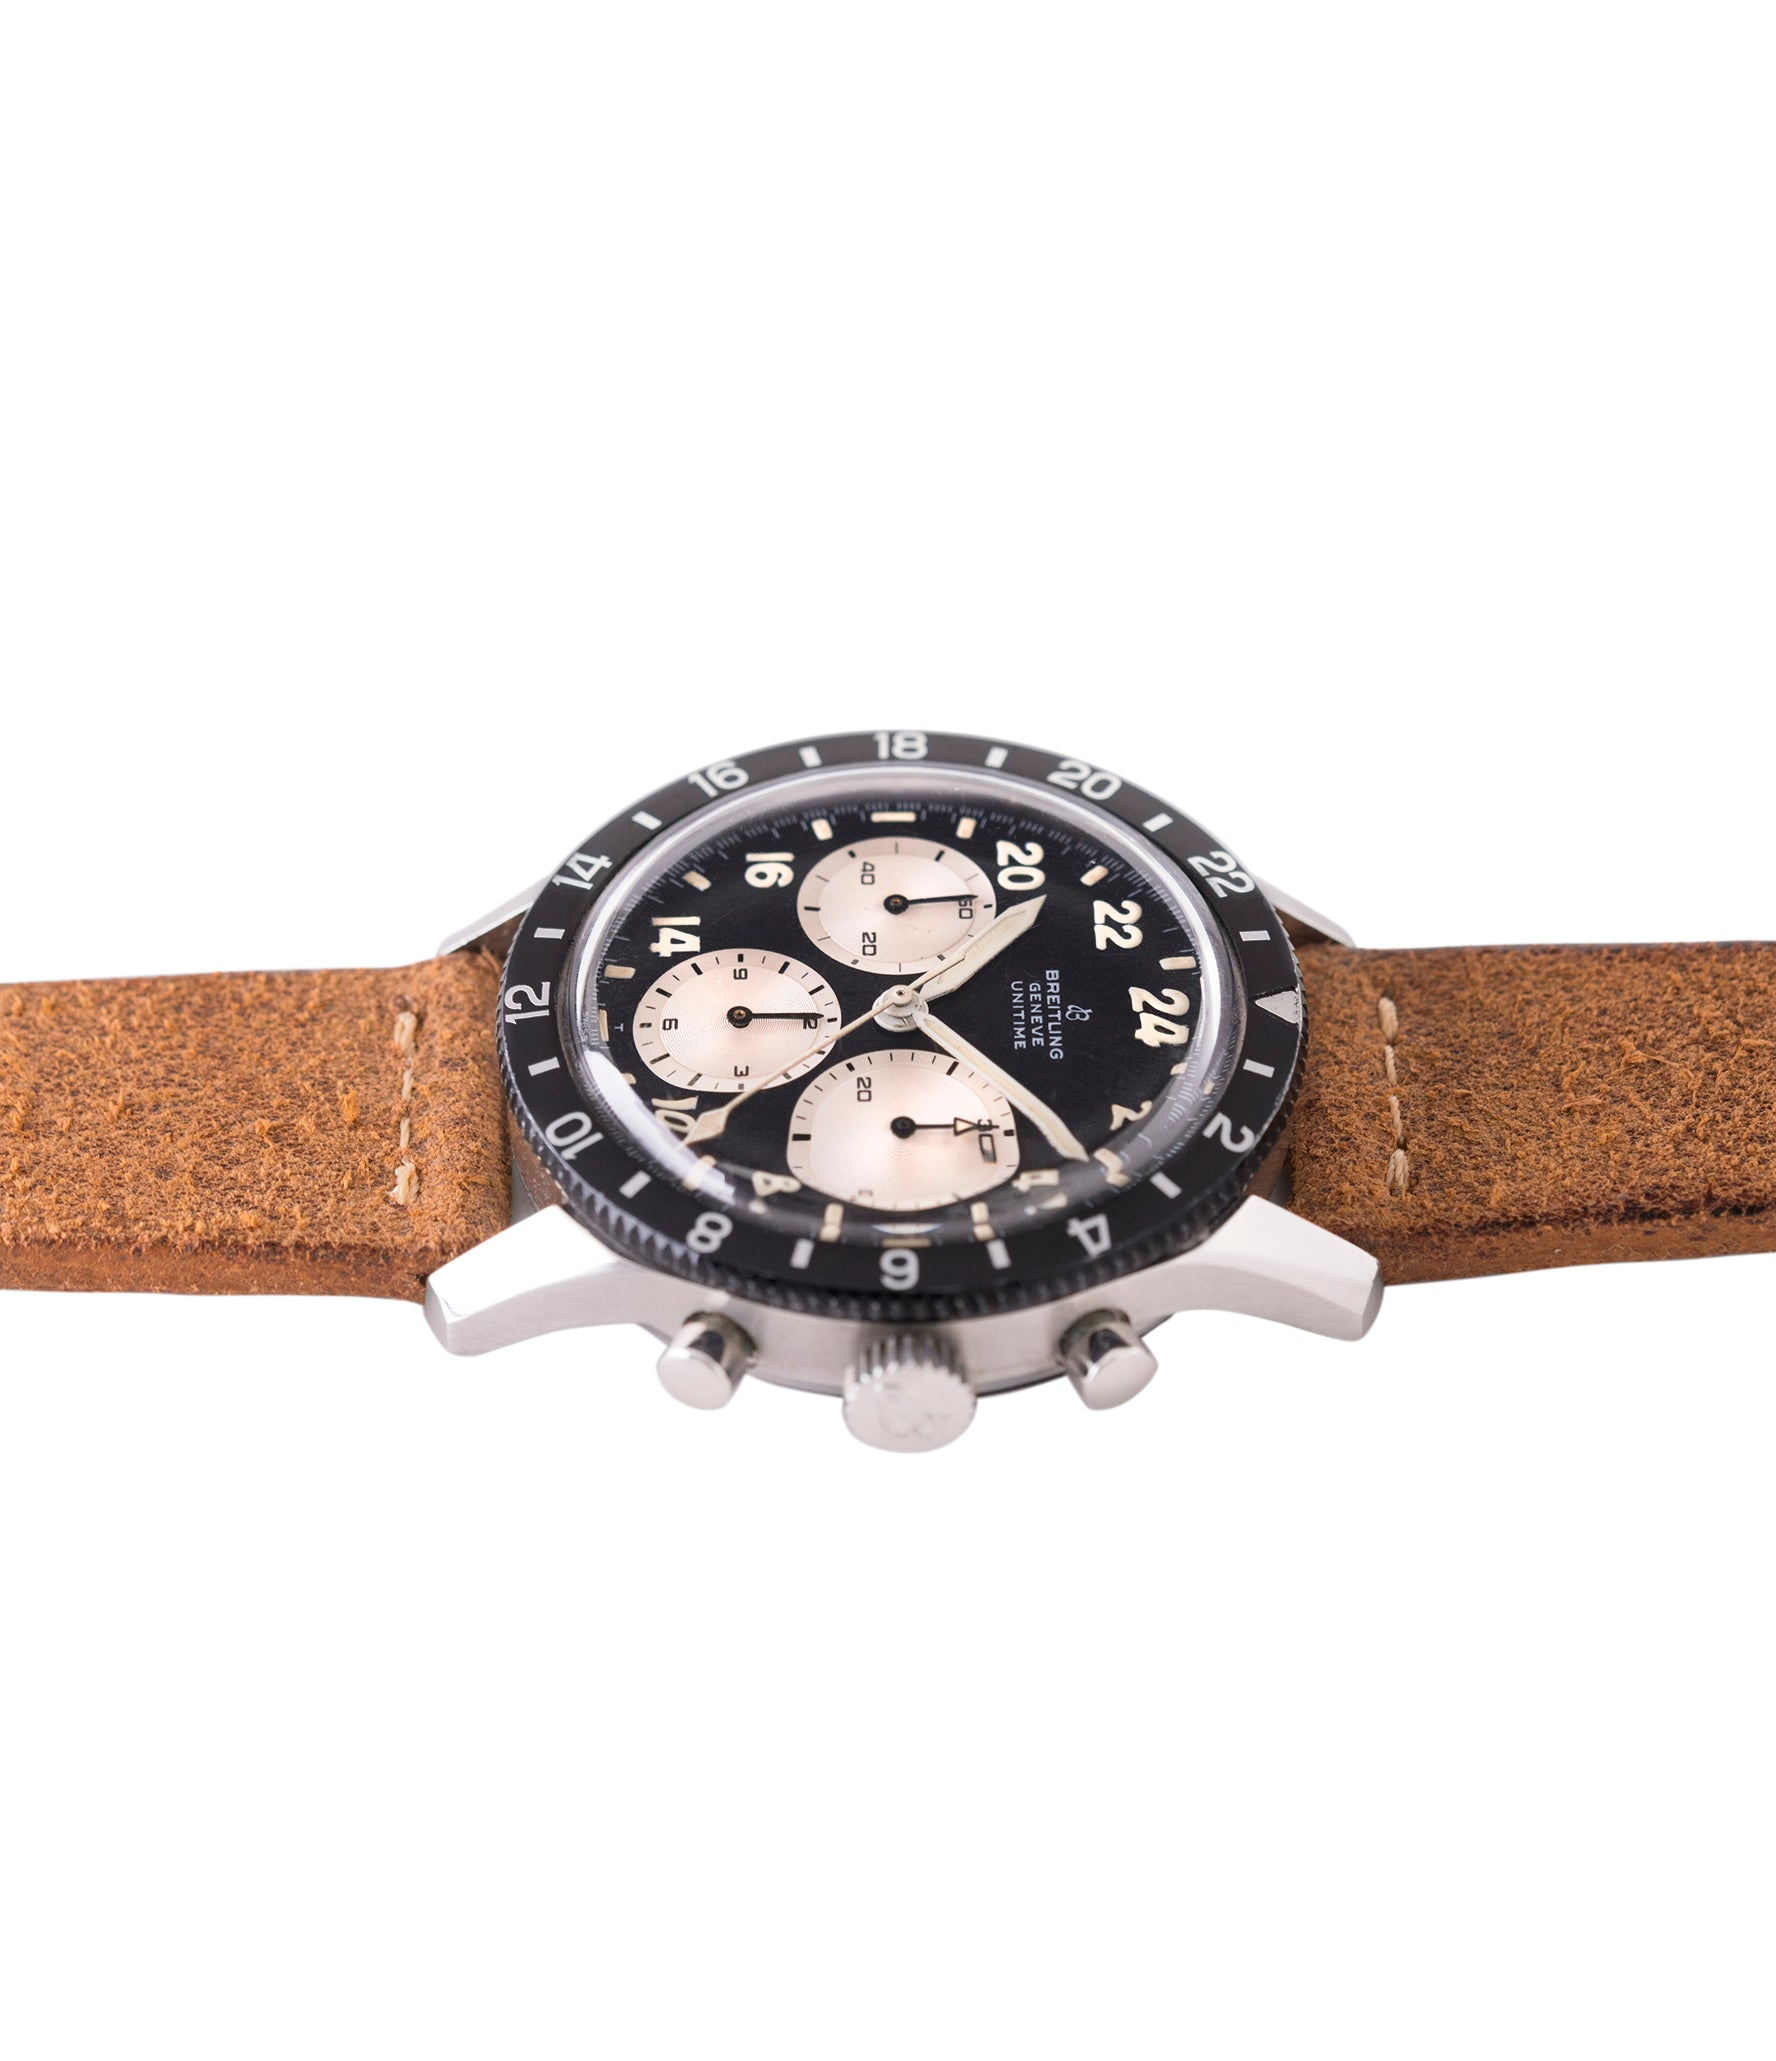 Breitling chronograph 1765 Unitime steel vintage Cal. 178 pilot watch for sale online at A Collected Man London UK specialist of rare watches